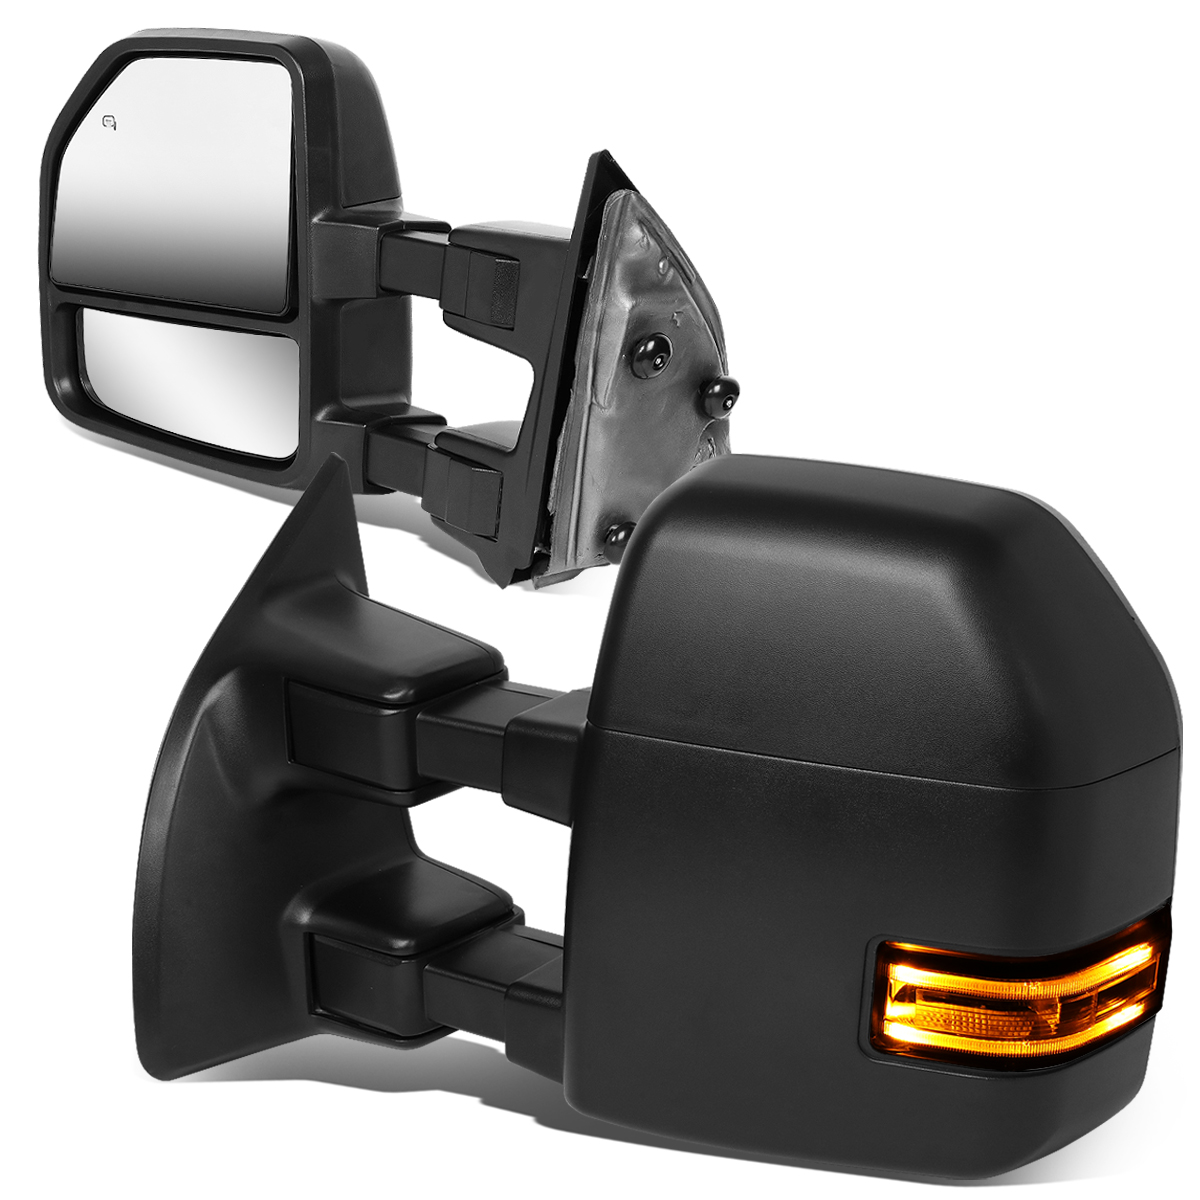 Power Heated Clearance Signals Tow Mirrors Pair For 2003 04 05 06 2007 Ford F250